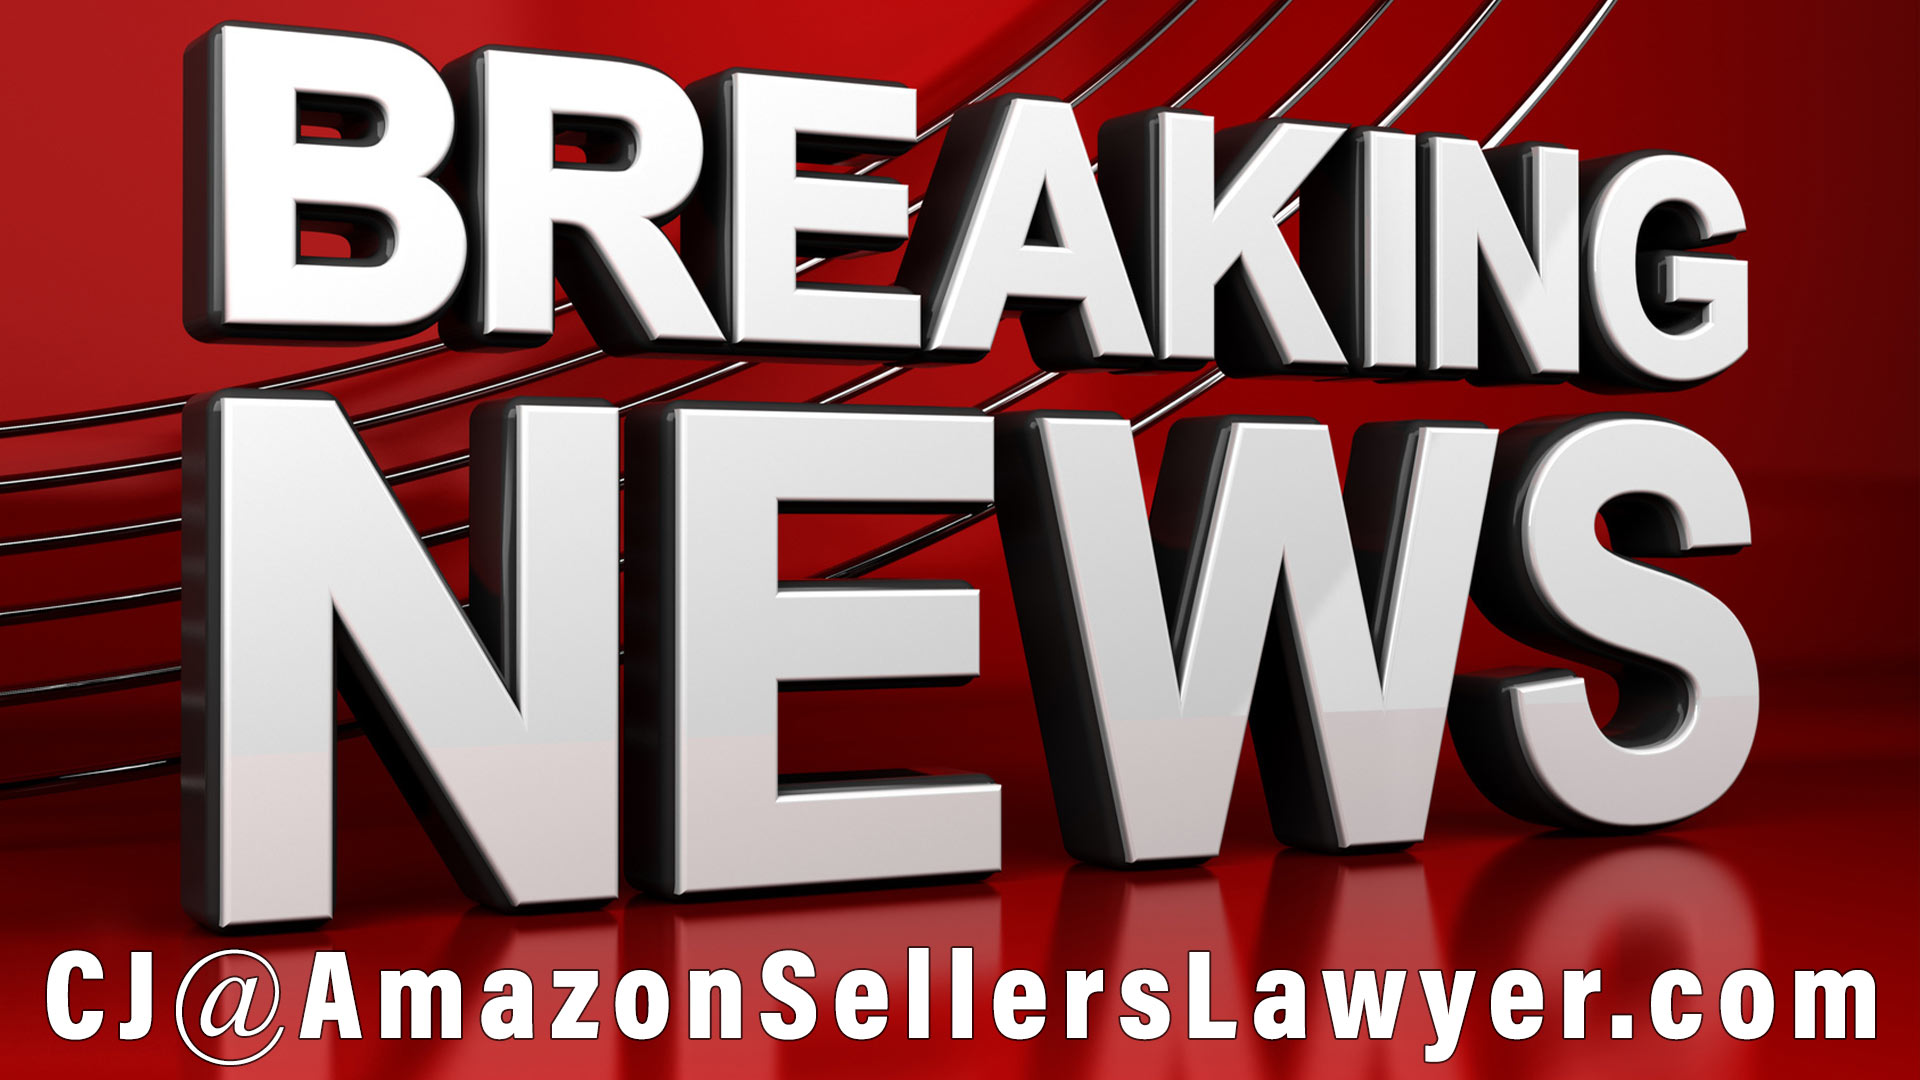 Amazon Seller News